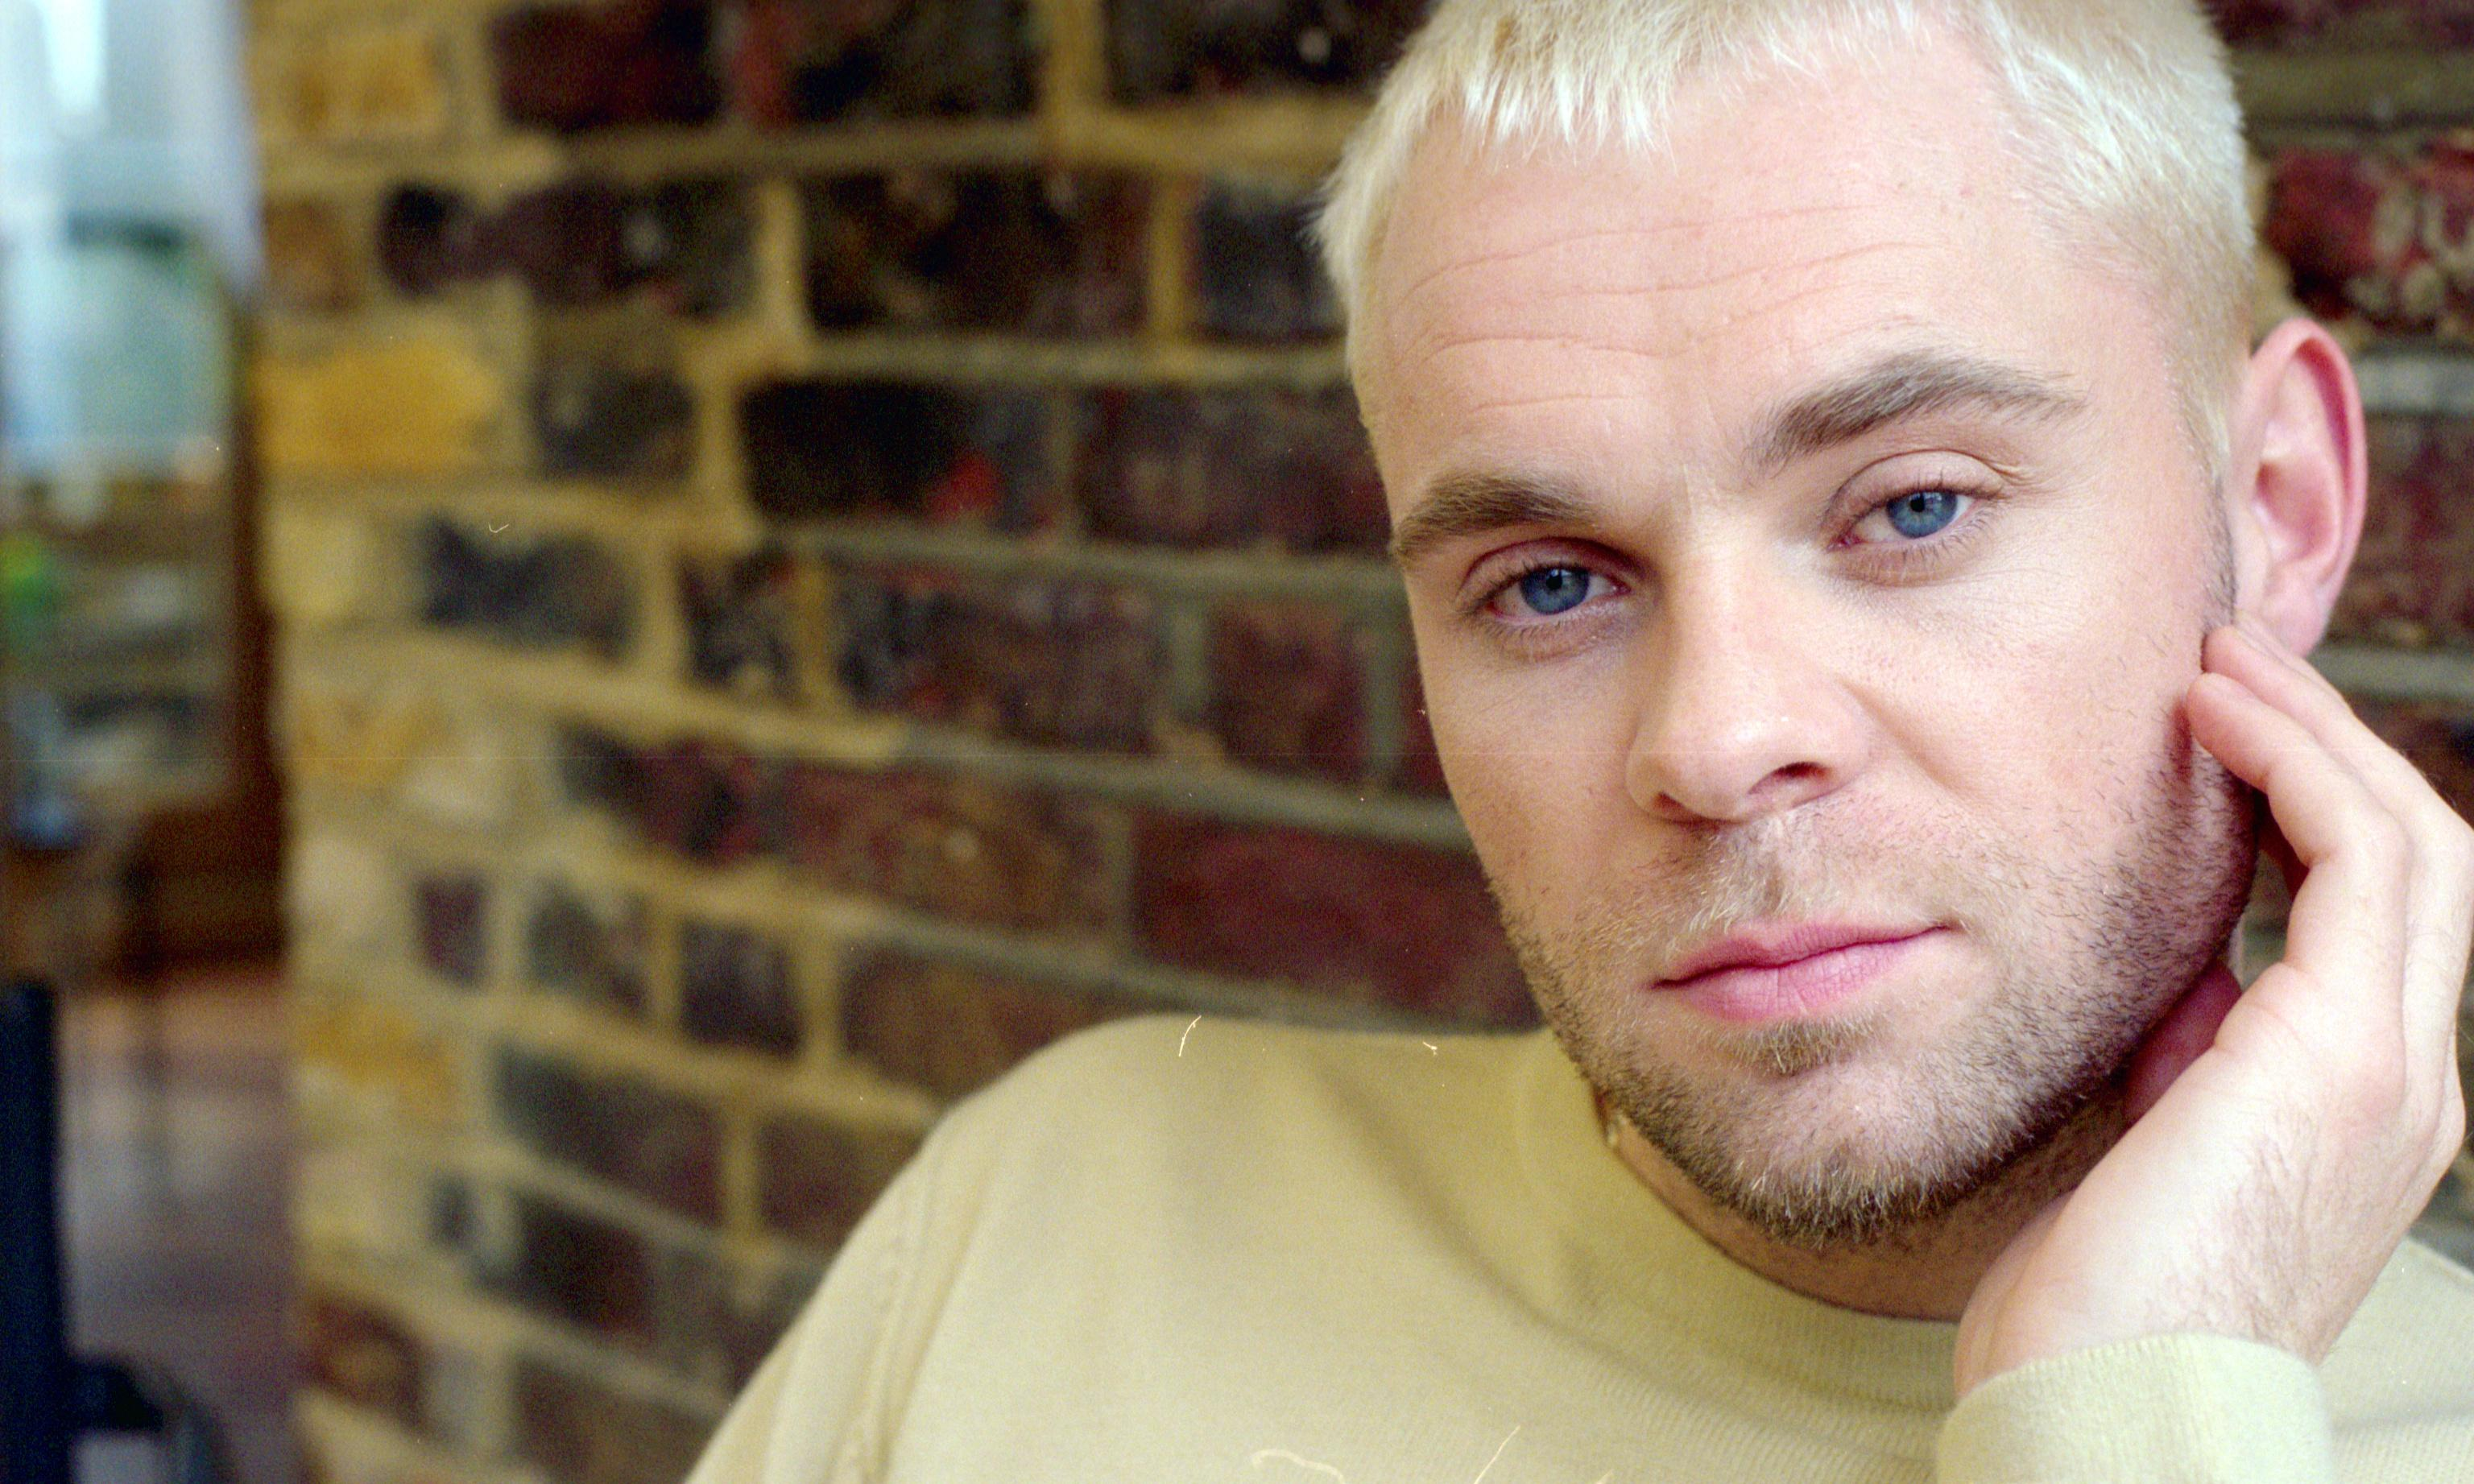 East 17's Brian Harvey arrested and hospitalised after self-harm threat